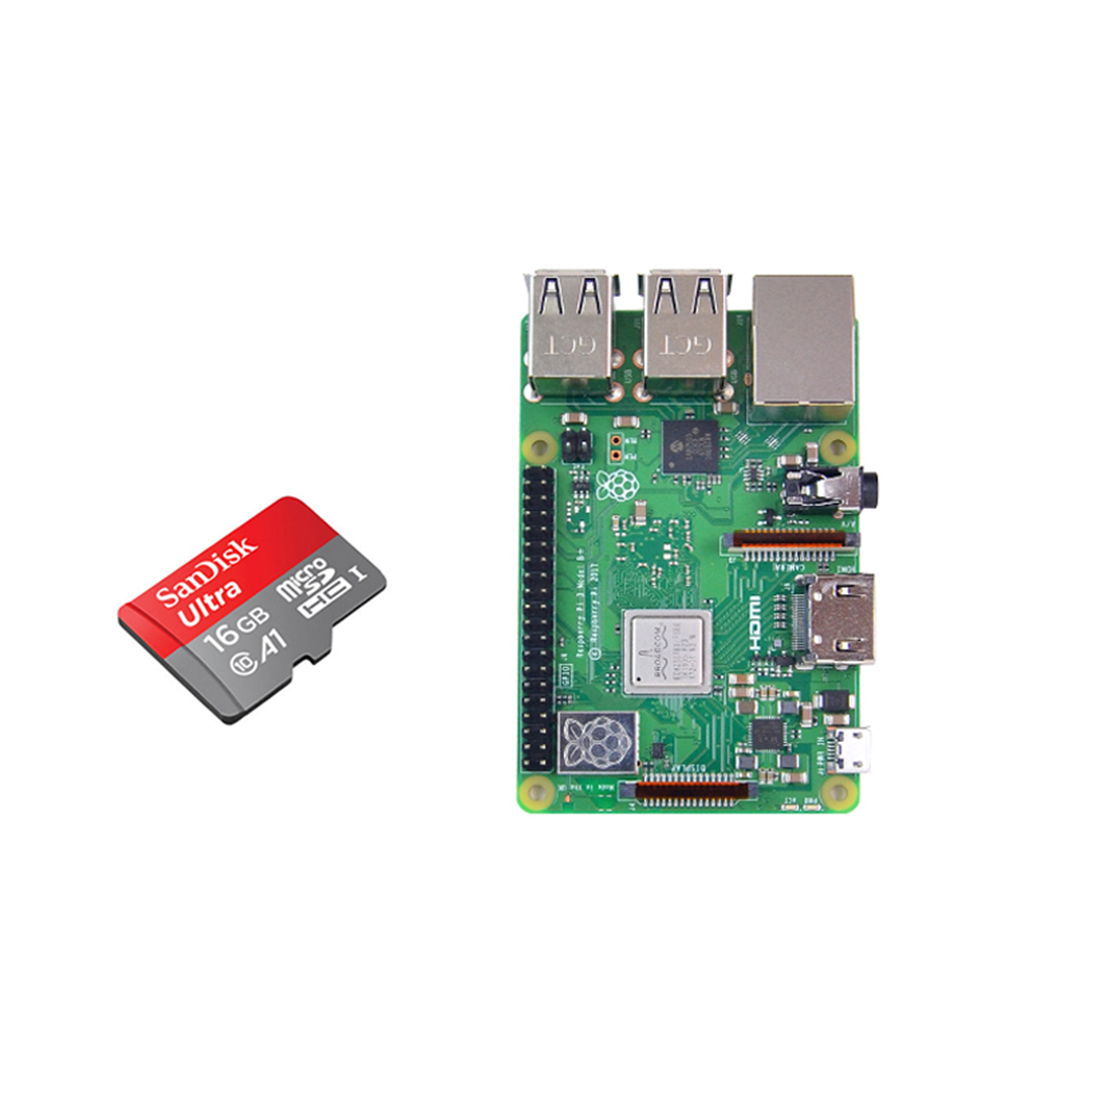 Development Board With 16G Memory Card For Raspberry Pi 4 (1G/2G Running Memory)